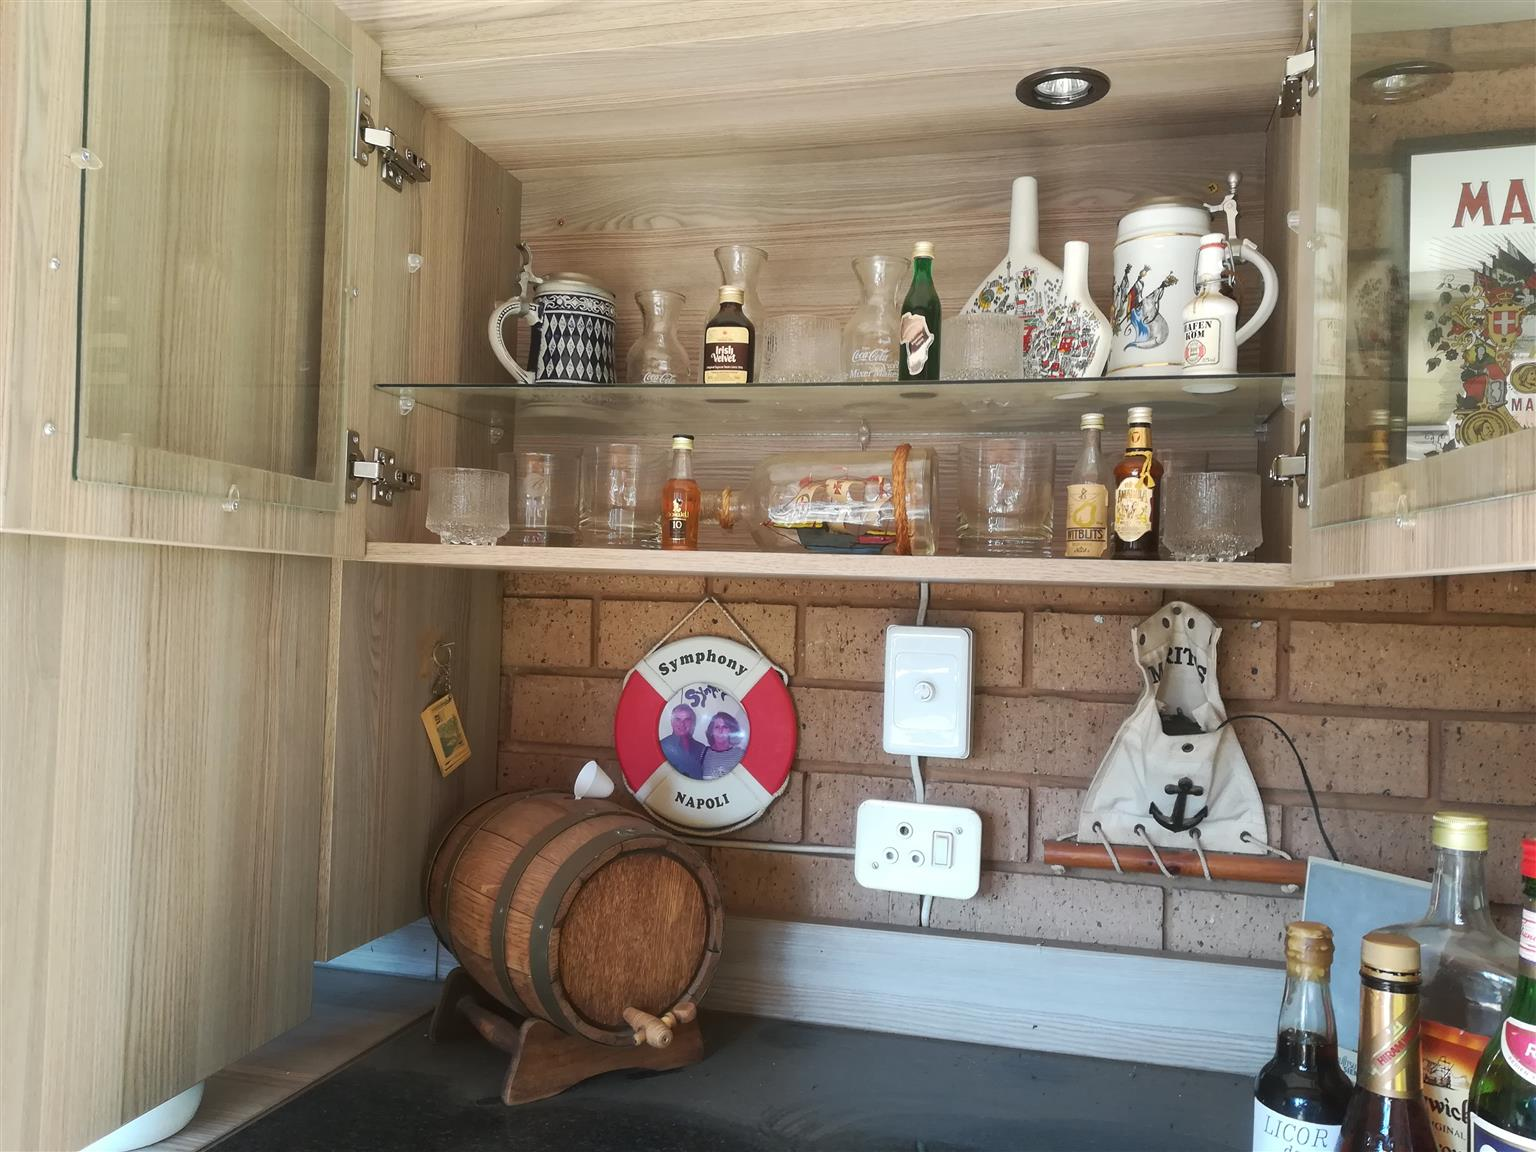 Bar fully stocked, utencials and glases